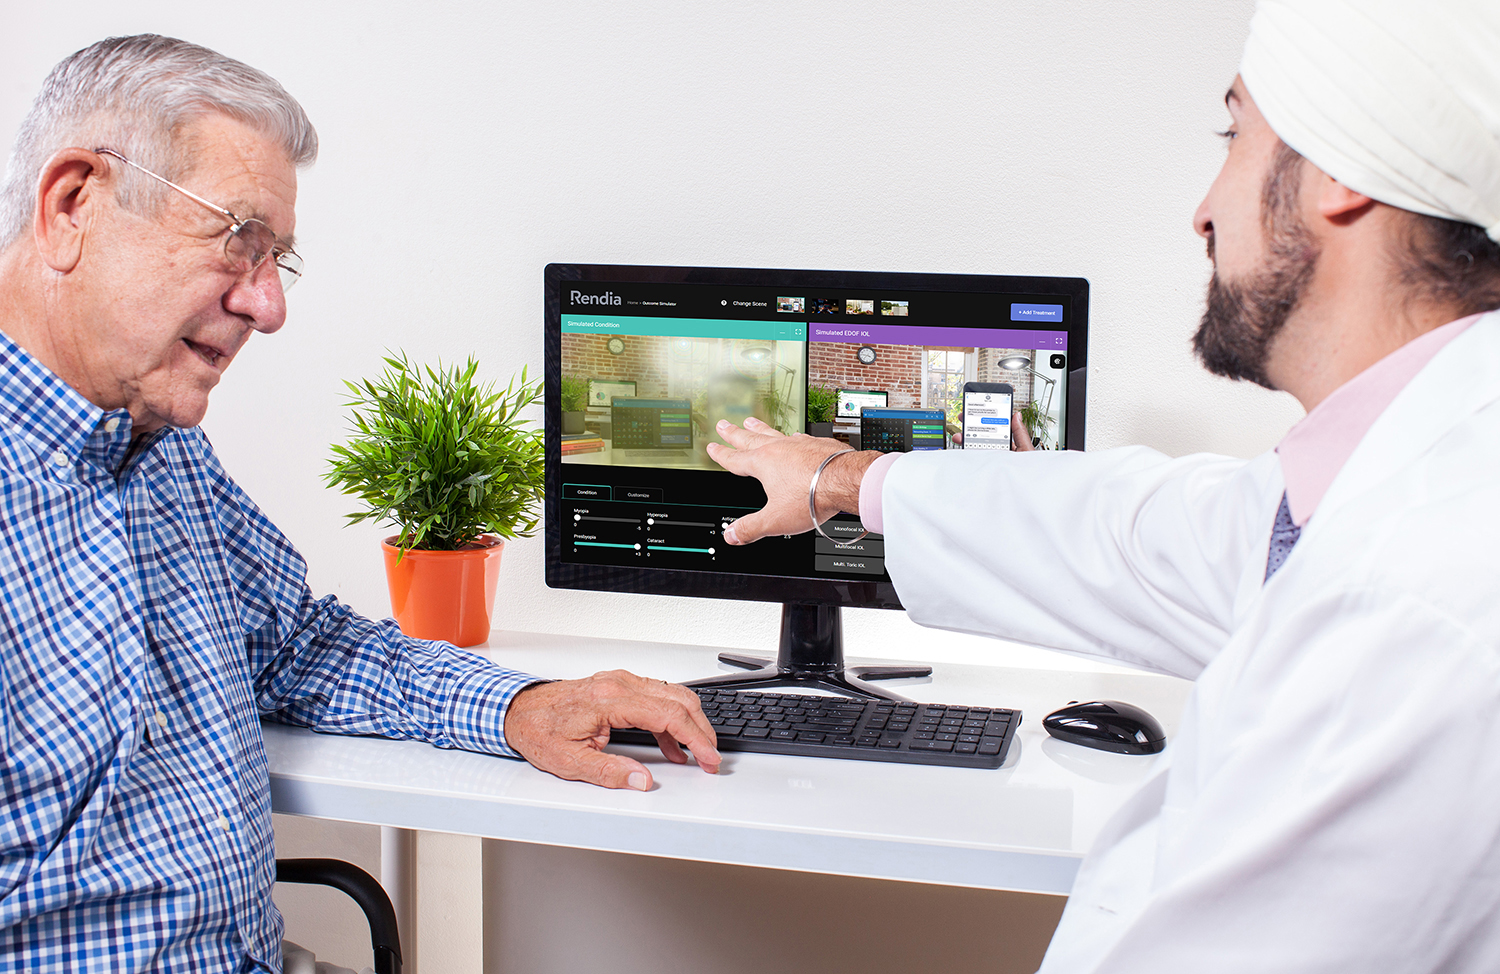 Cataract surgeon speaks with patient and uses the Outcome Simulator tool to show how the treatment will affect his vision